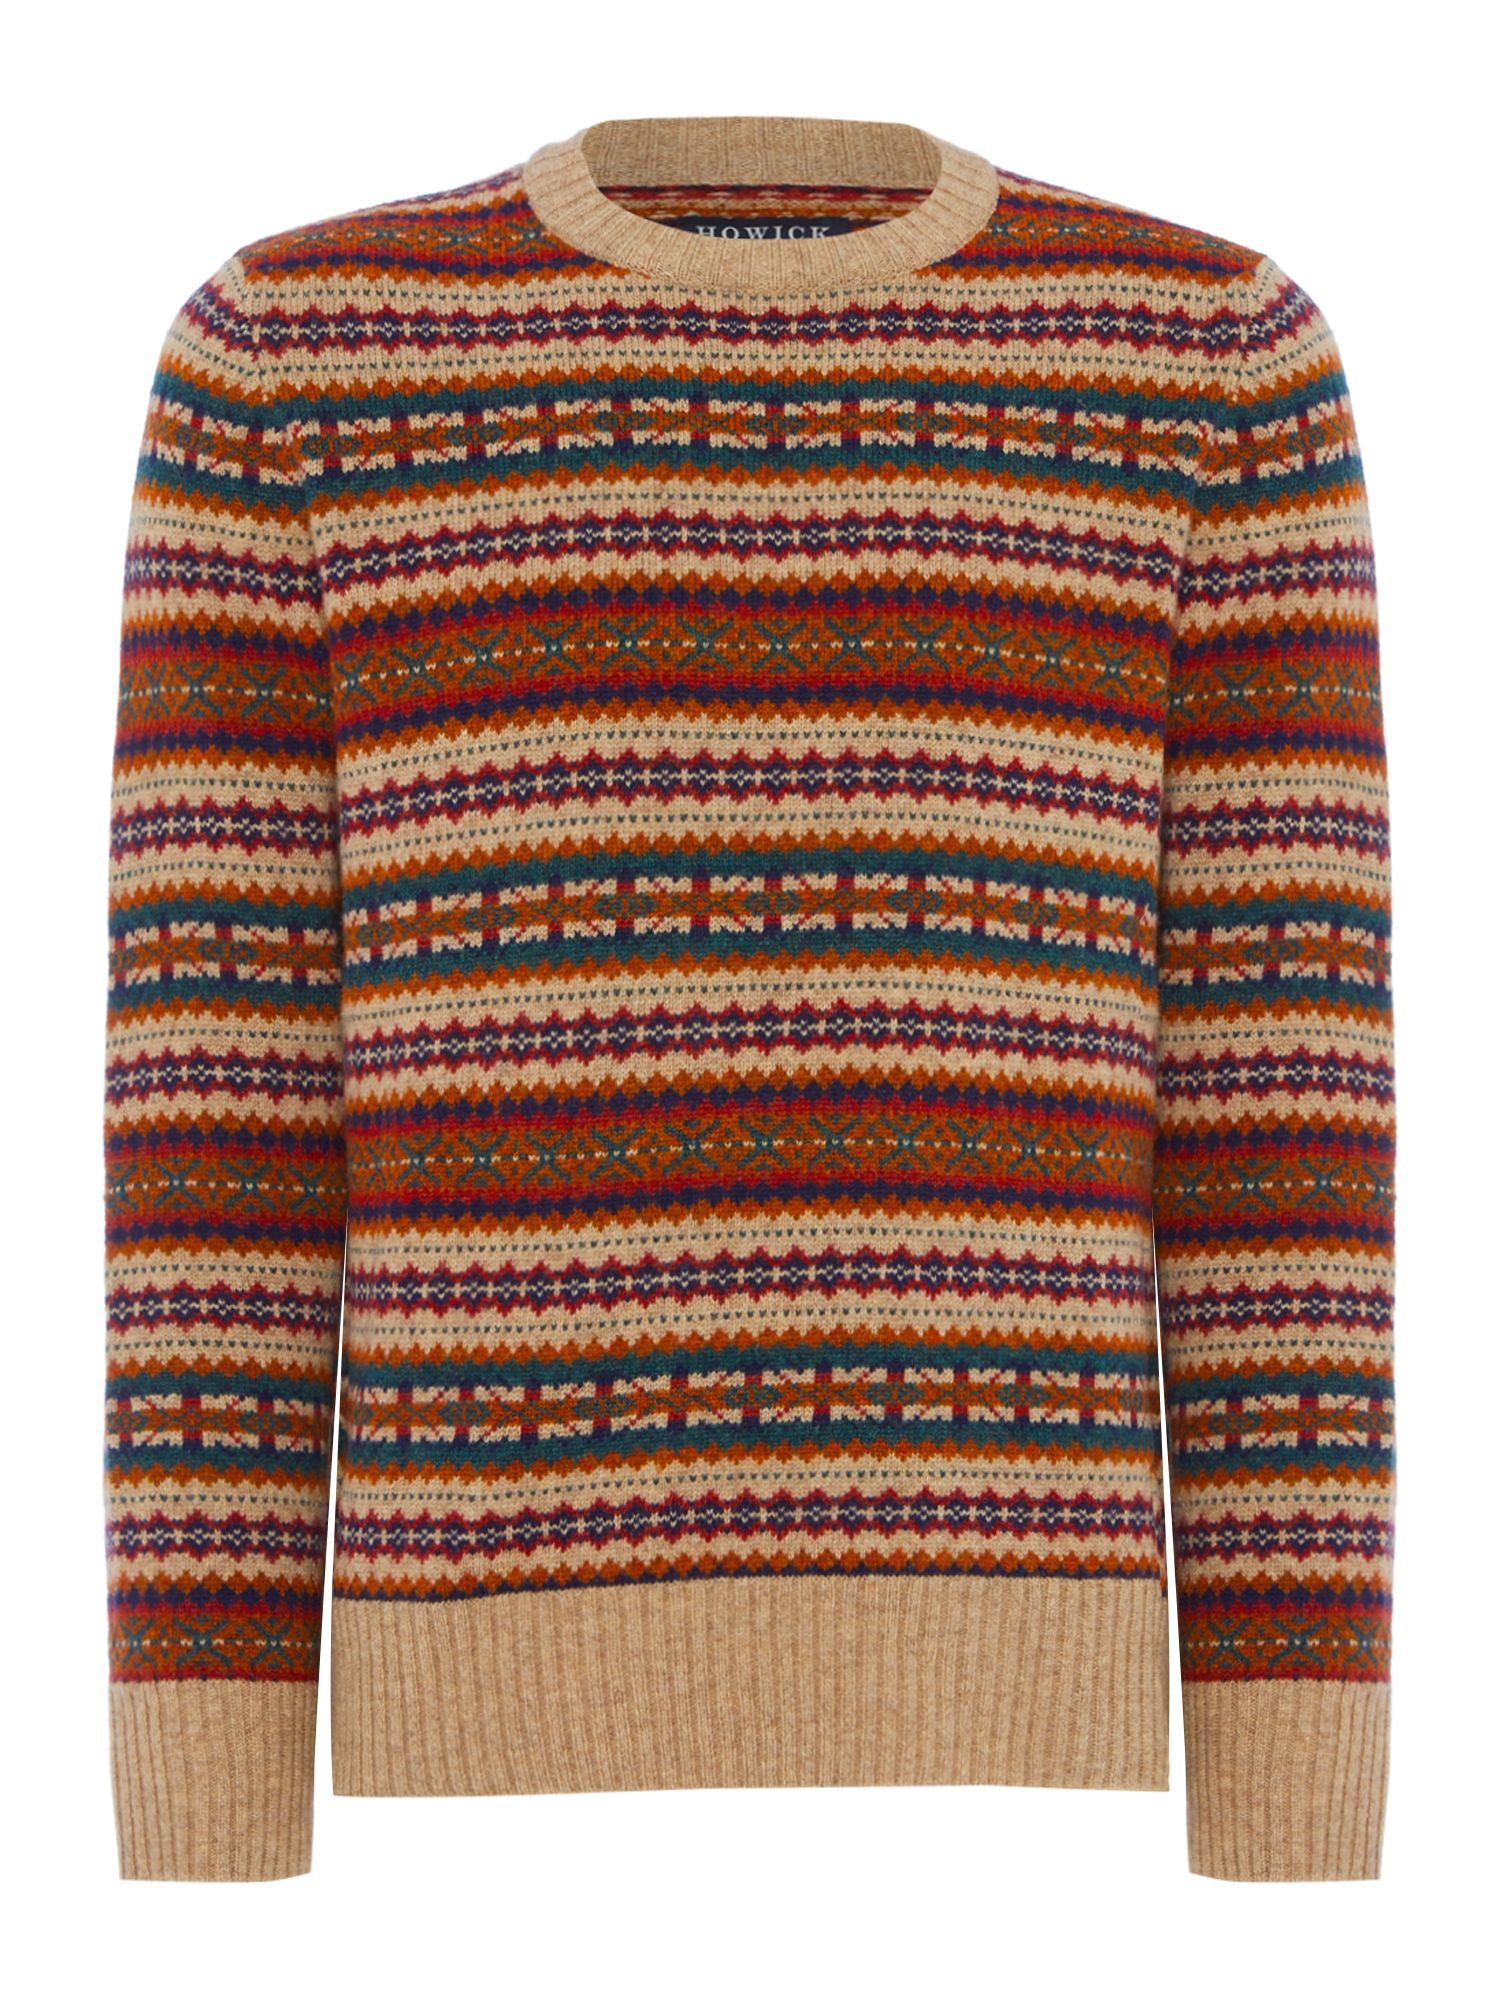 Men's Vintage Style Sweaters – 1920s to 1960s Mens Howick Clarenville Fair Isle Crew Neck Jumper Oatmeal £35.00 AT vintagedancer.com